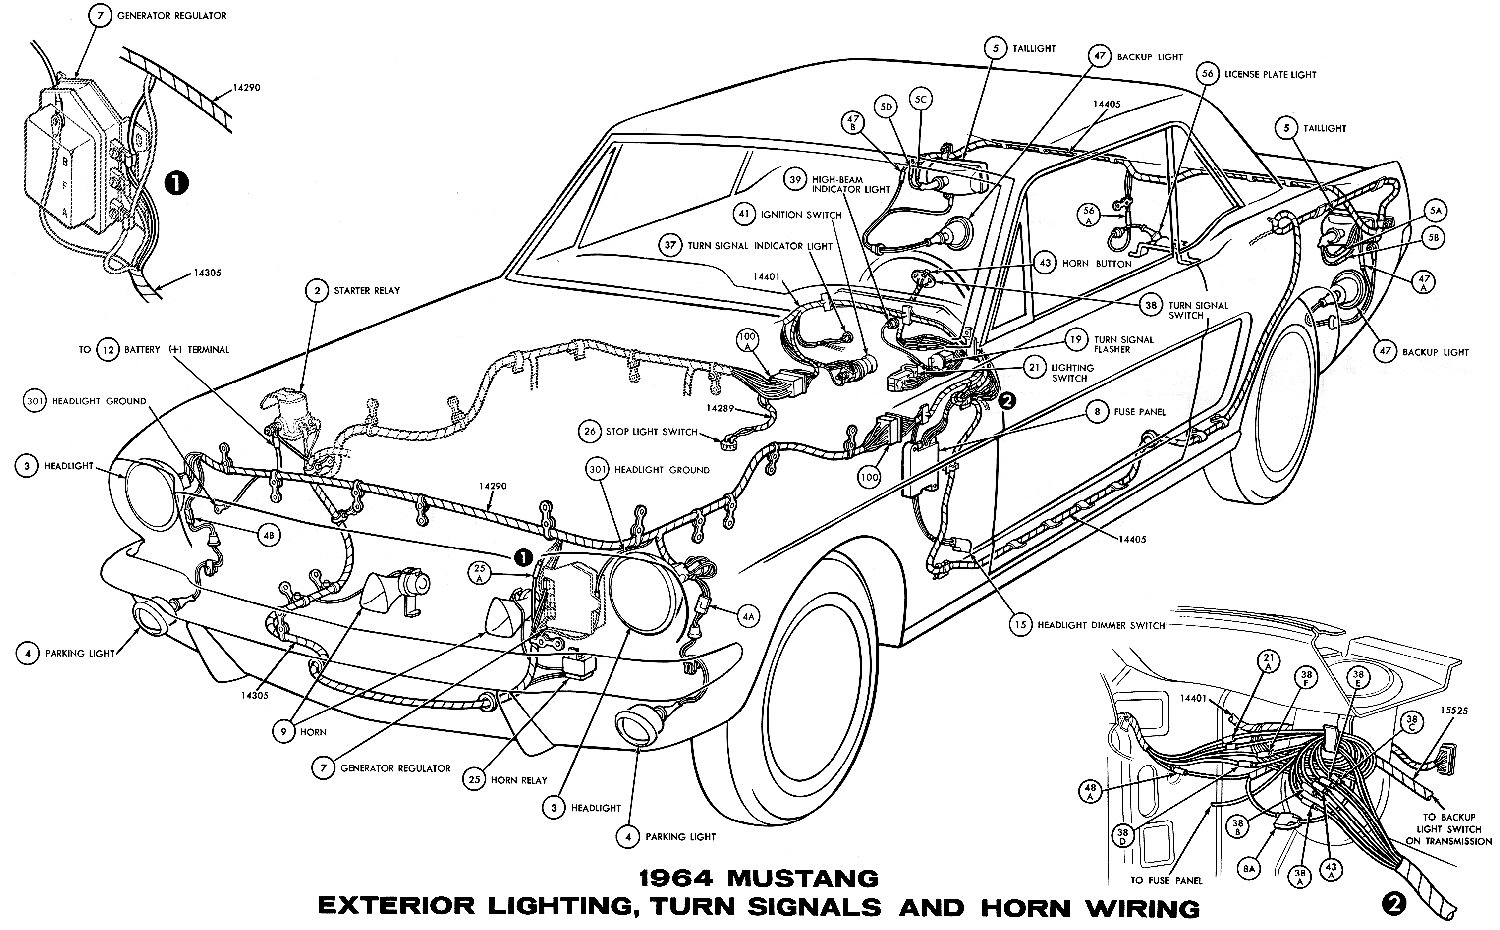 1964 mustang wiring diagrams average joe restoration rh averagejoerestoration com Ford 2000 Tractor Parts Diagram 2011 Mustang Headlight Wiring Diagram